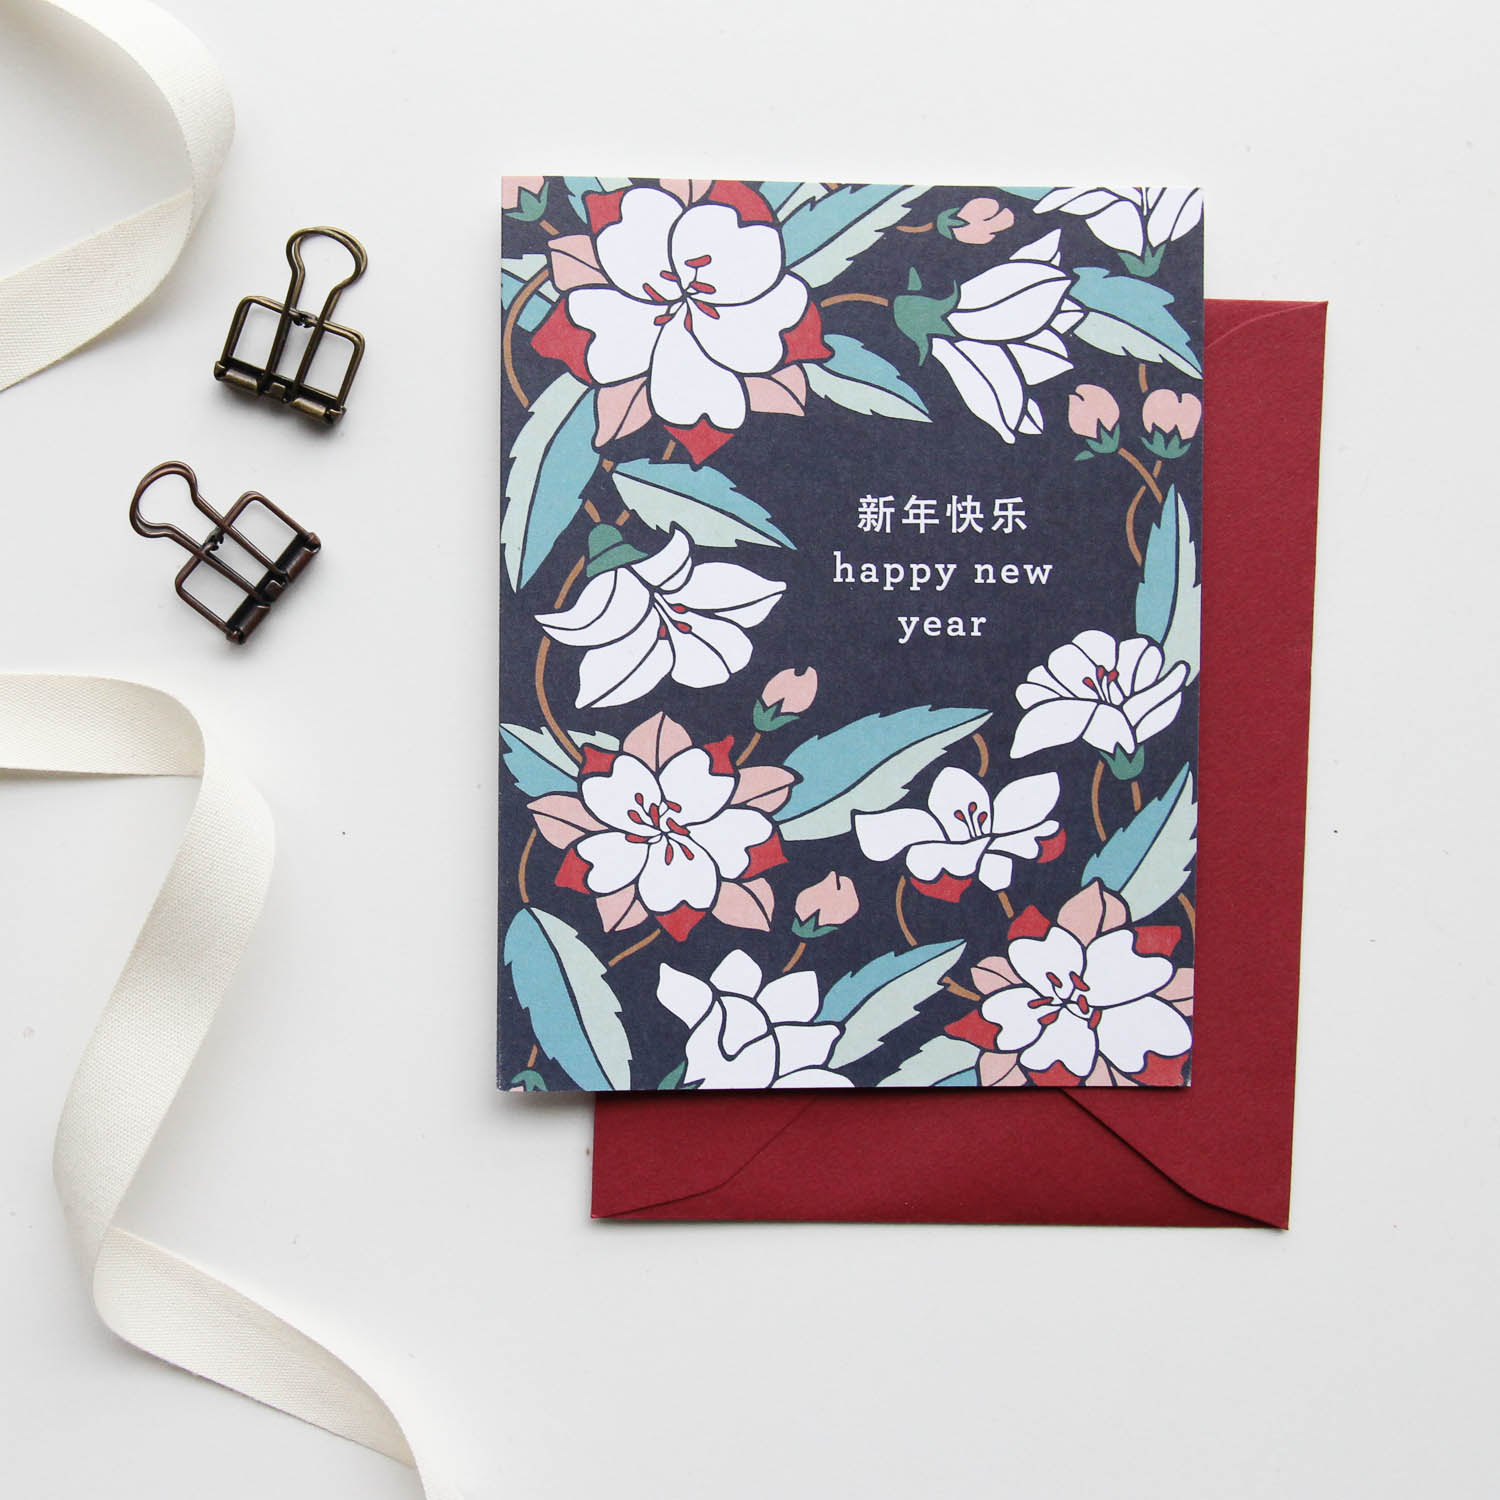 Chinese New Year Card, Spring Festival Card - Christmas Cards 2018, Holiday Cards | Illustrated Floral Christmas Cards by Root & Branch Paper Co.